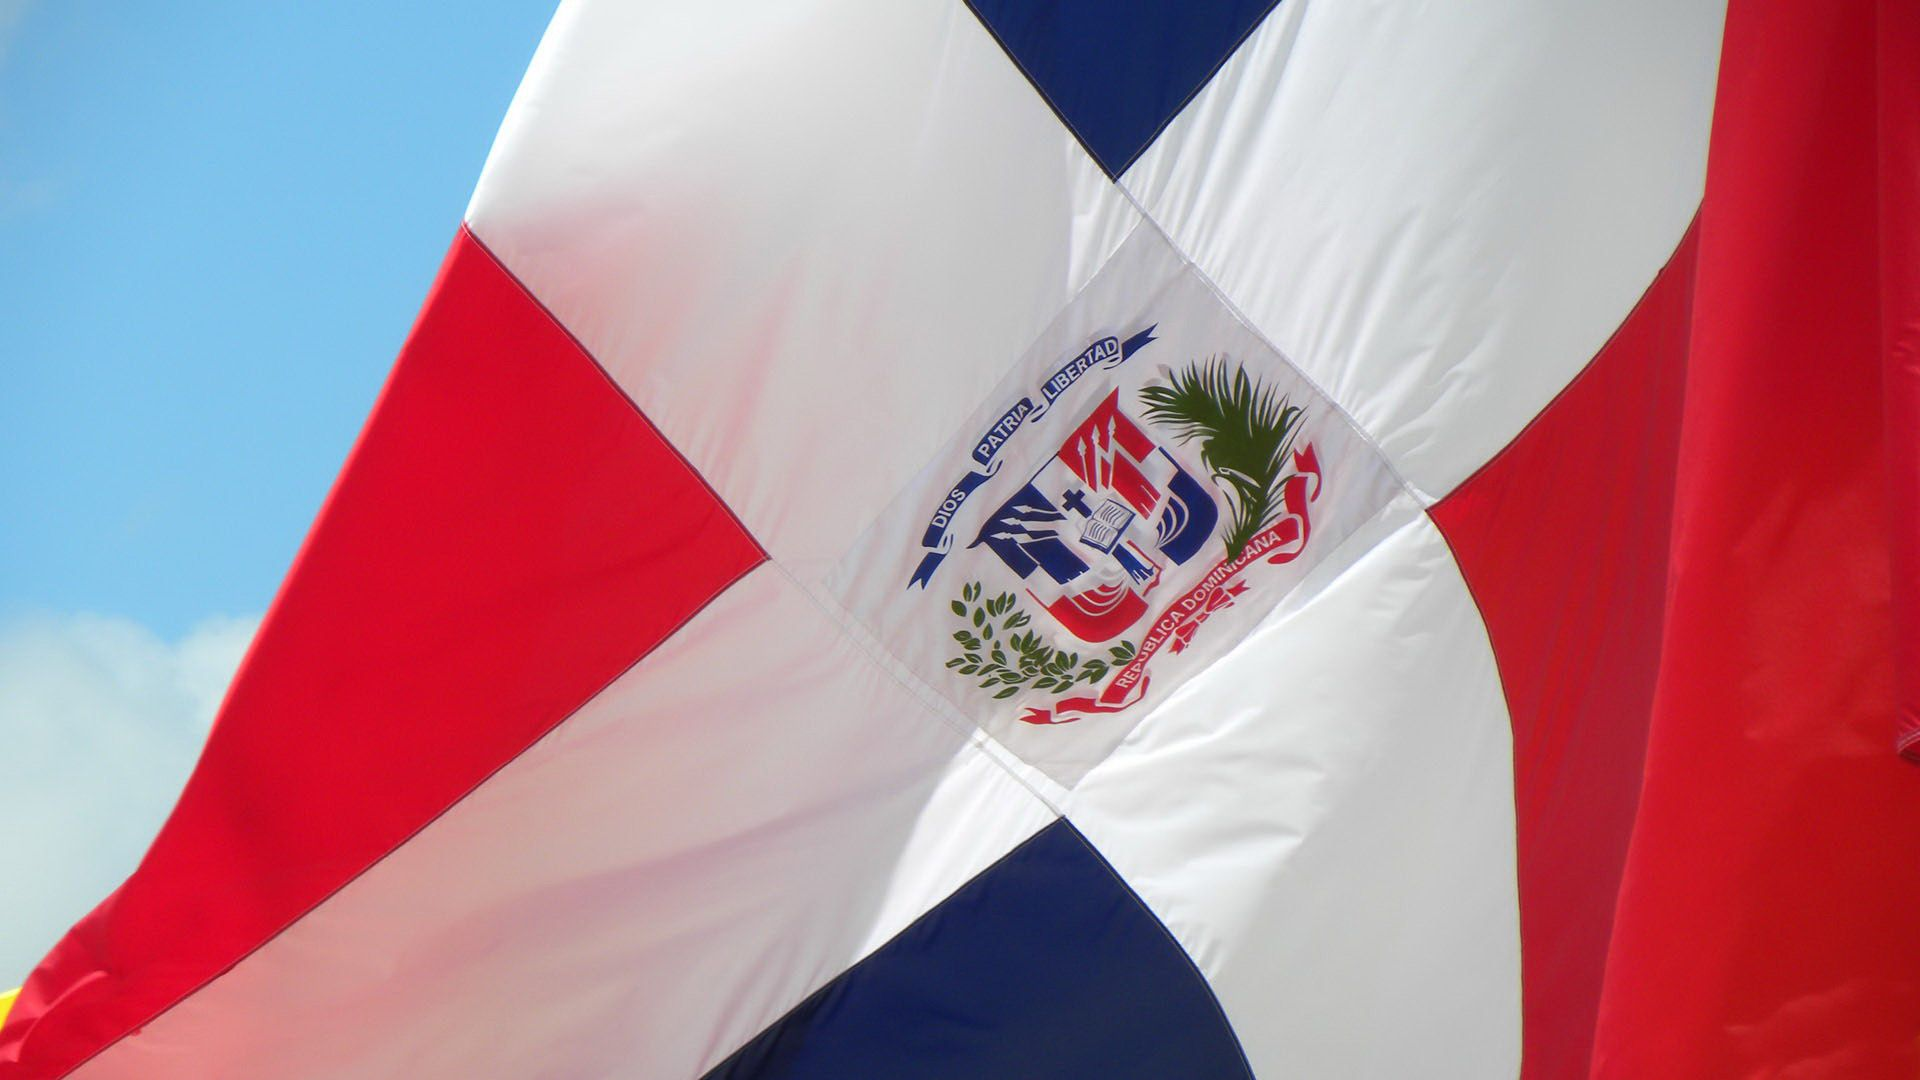 1920x1080 Dominican Republic Flag Cool, Hd Wallpapers & backgrounds Download ...